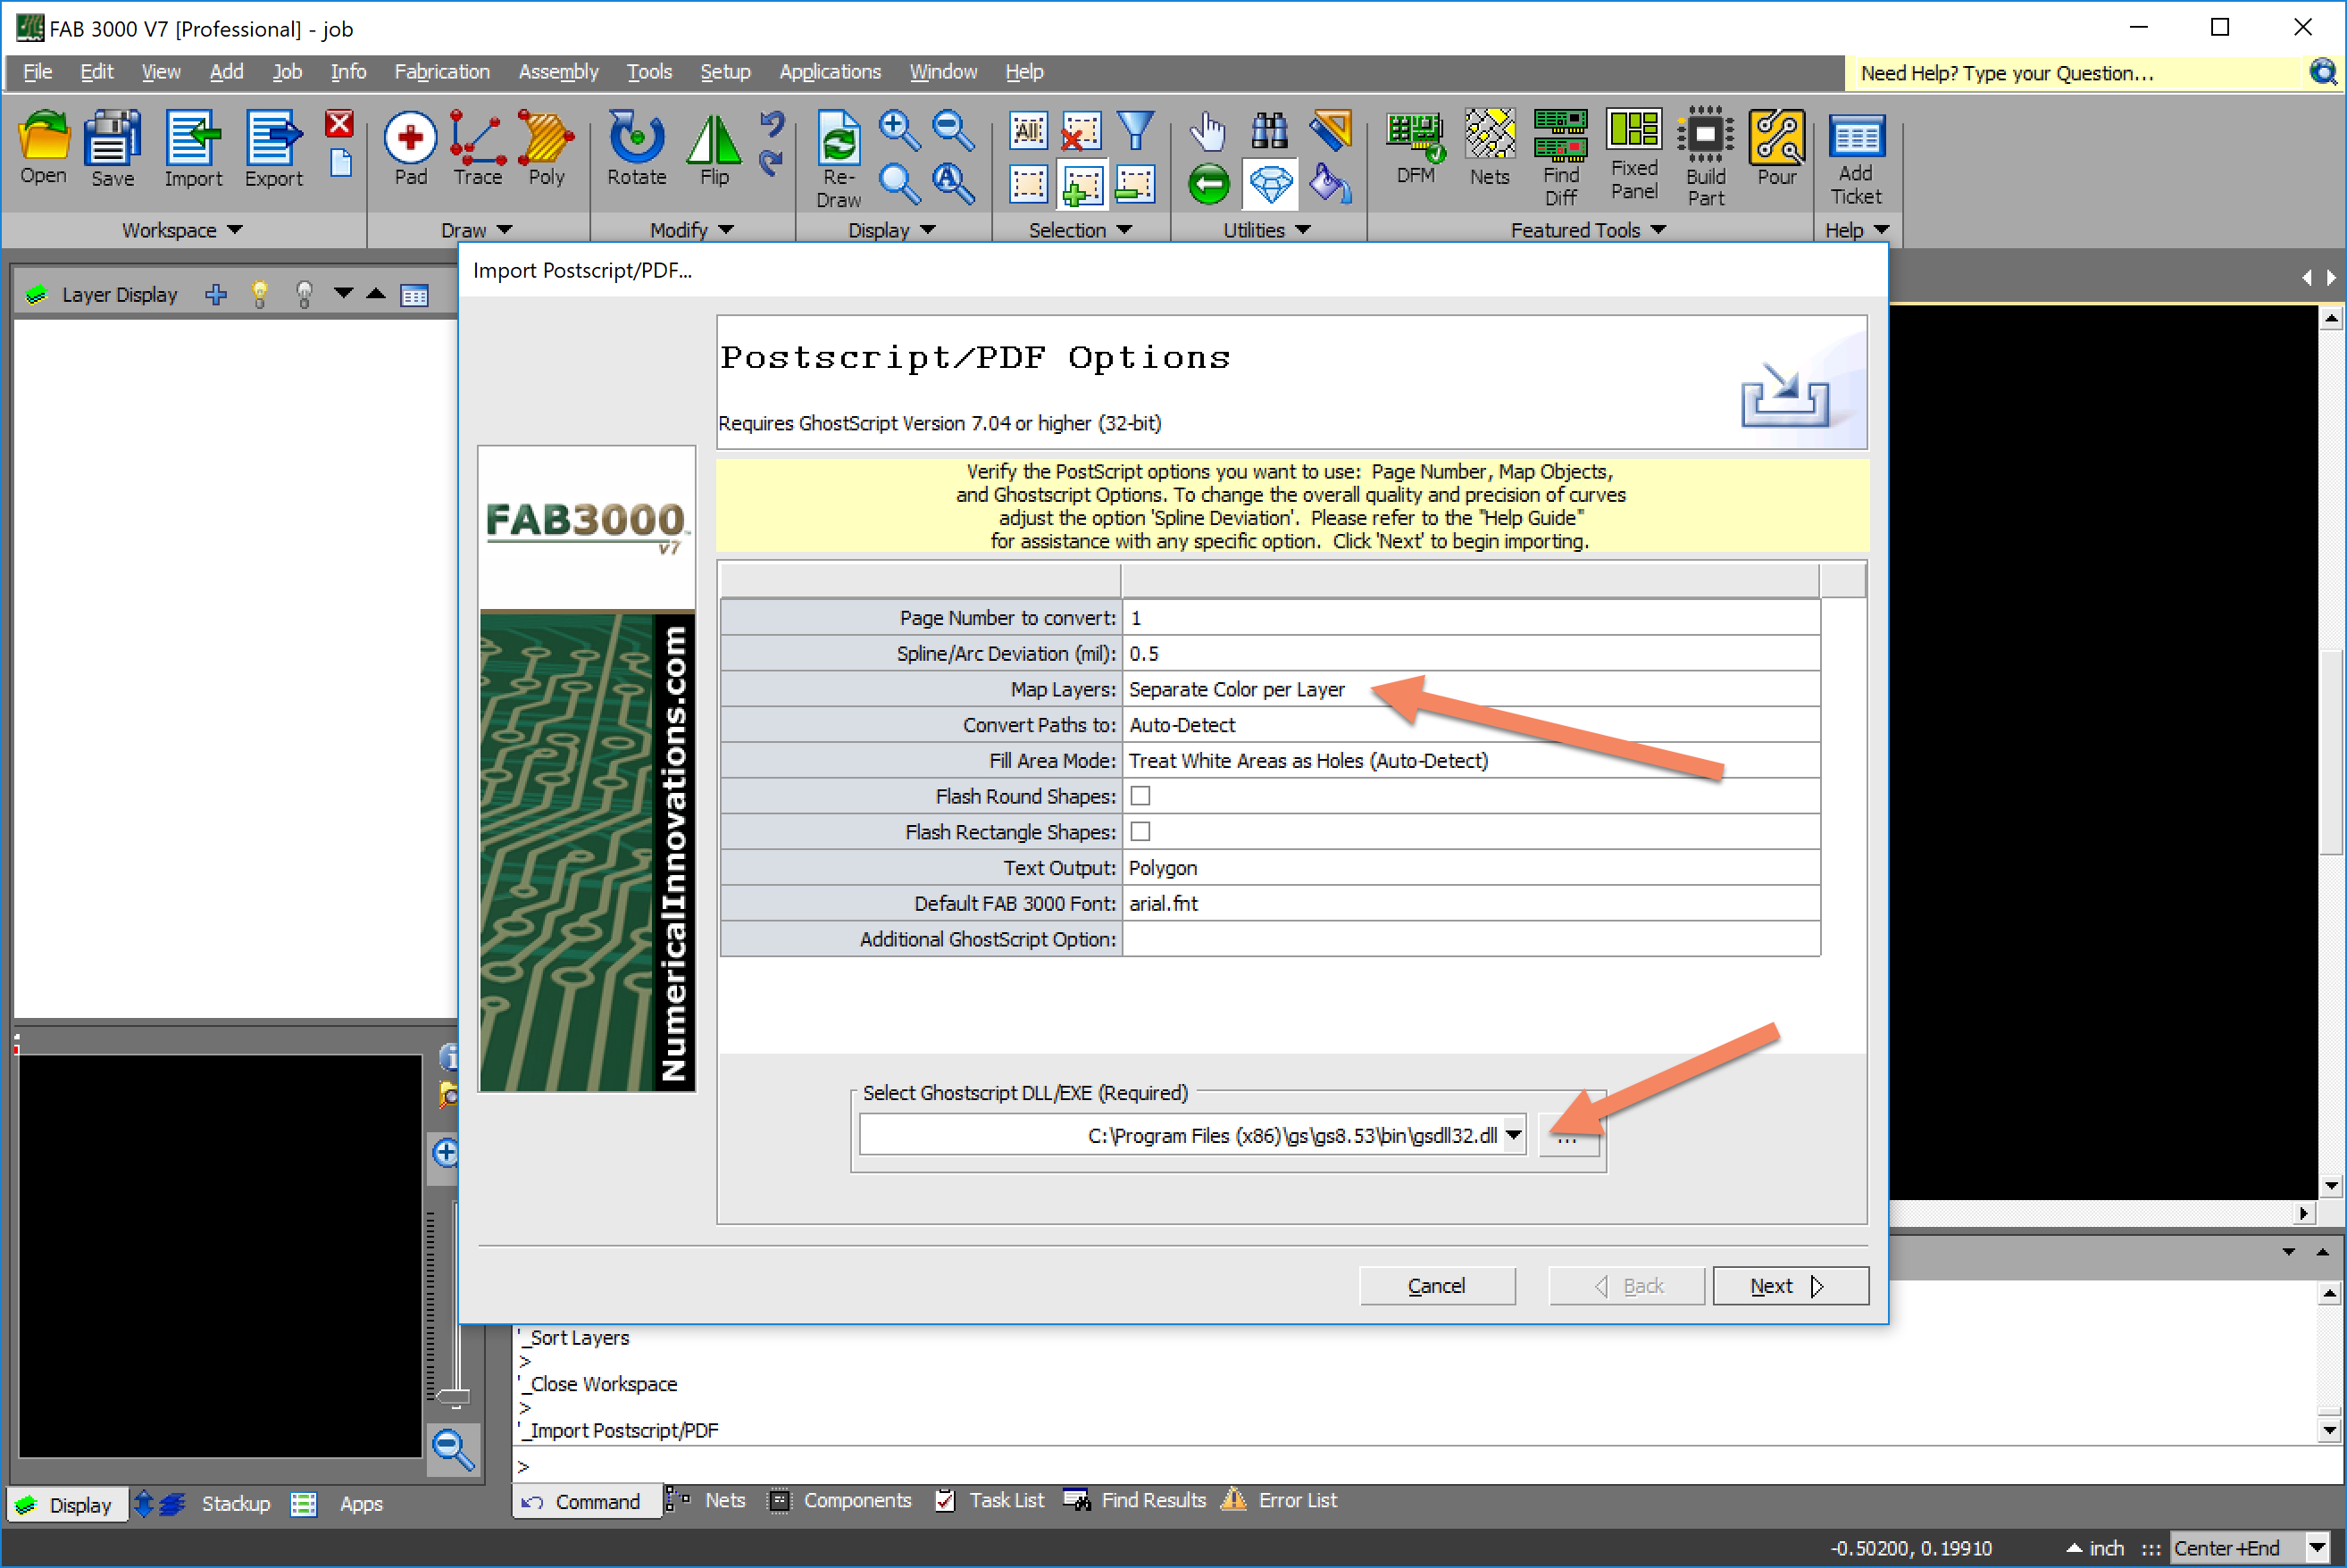 I am having problems importing my pdf files into FAB3000